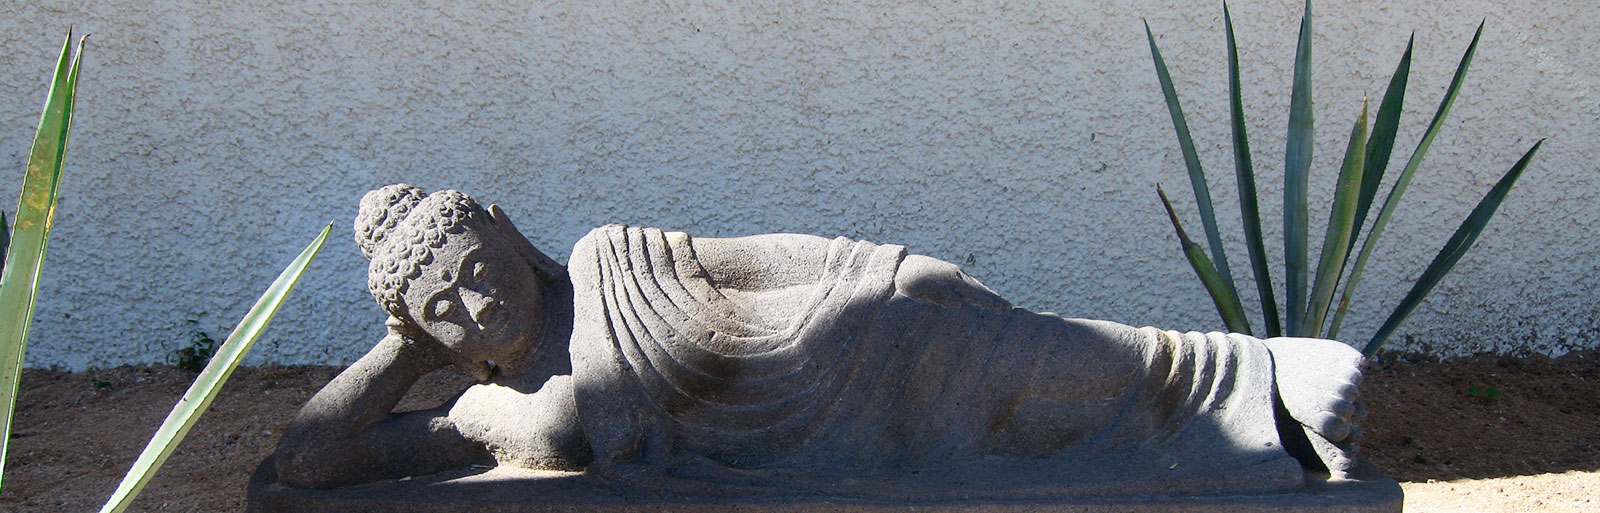 Gardens at Yoga Retreat Mexico: Reclining Buddha Statue in tthe Garden